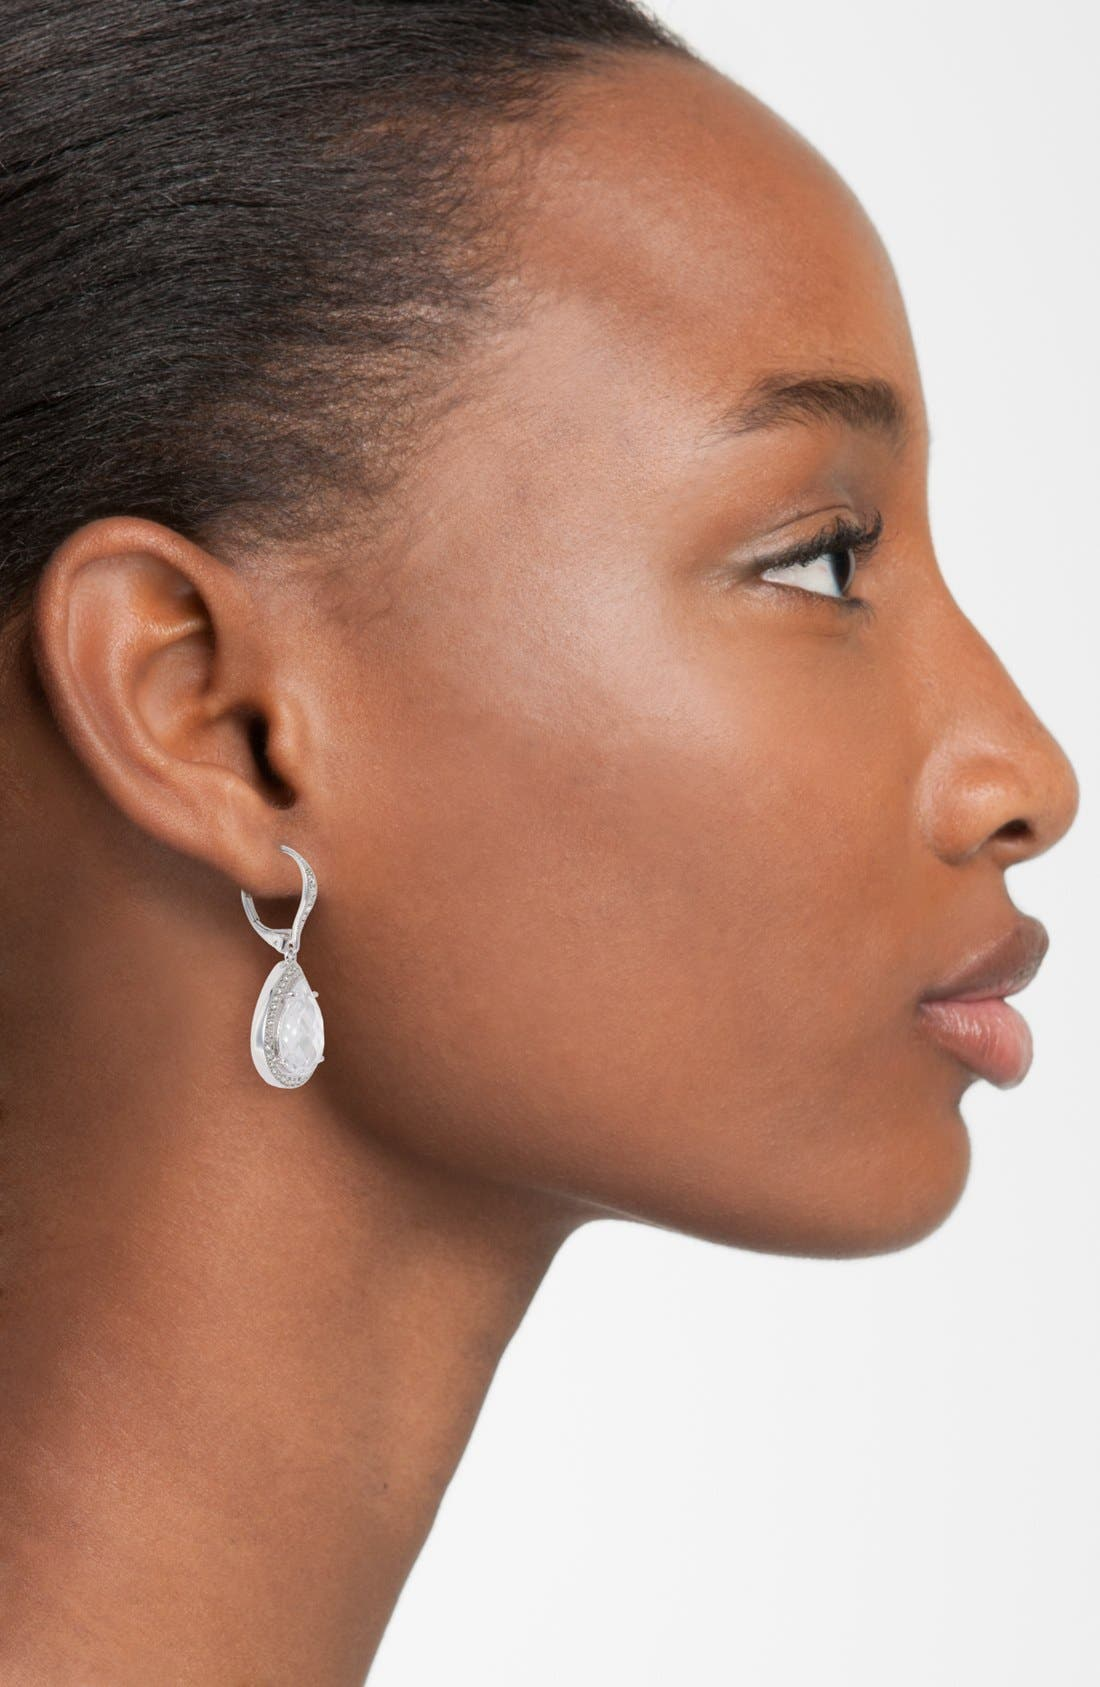 Pear Drop Earrings,                             Alternate thumbnail 4, color,                             CLEAR CRYSTAL/ SILVER